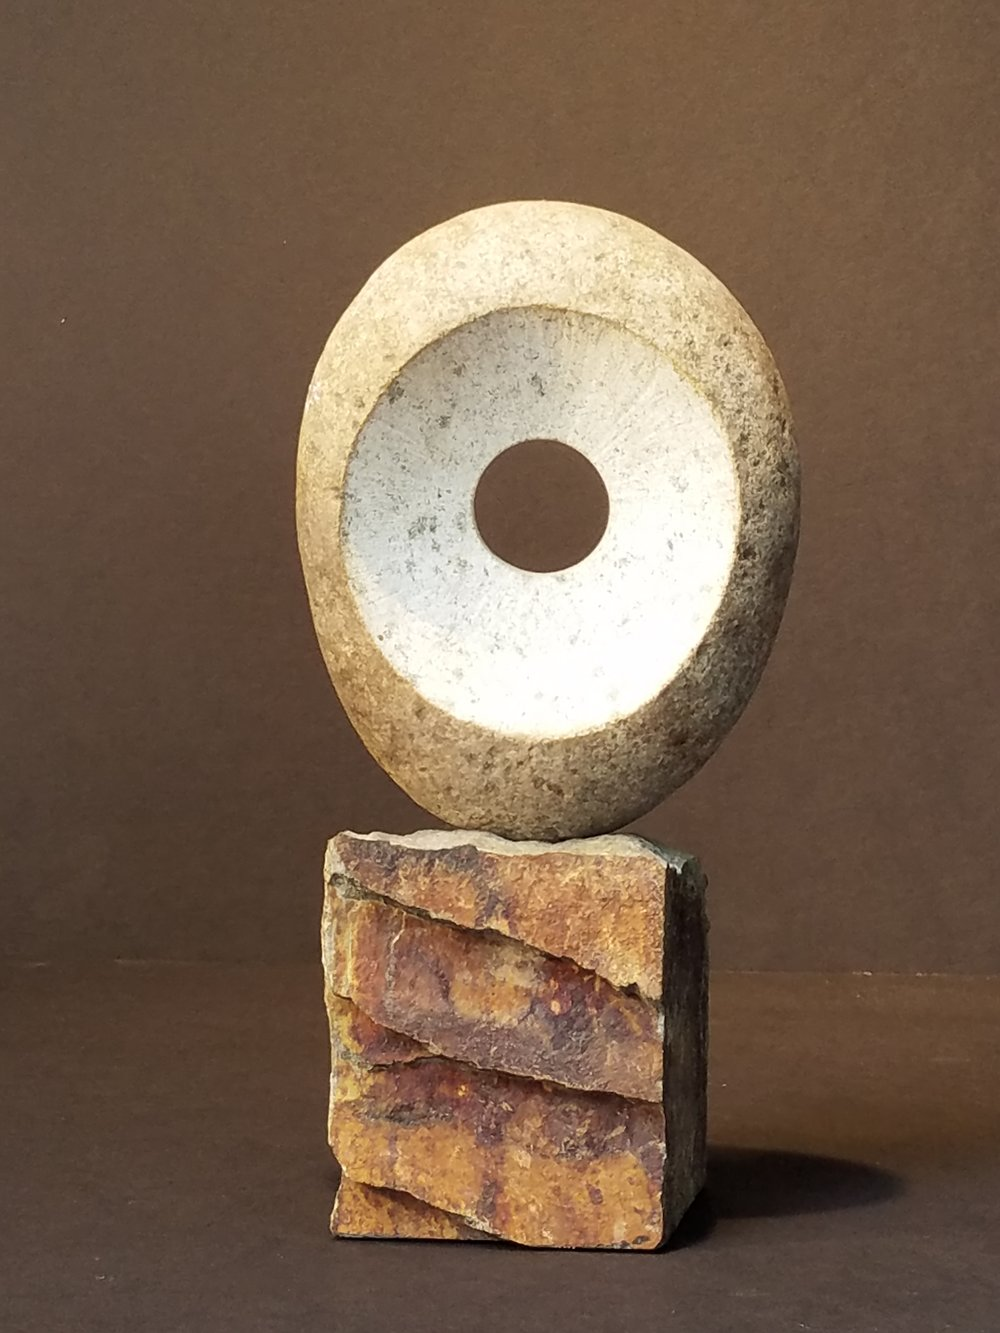 "This is from a series of works using beach stones from Santa Cruz. This one was presented as an award from Film Independent to George Clooney in 2005. Medium: Granite on Wood Base Dimensions: 5"" x 8"" x 12"""